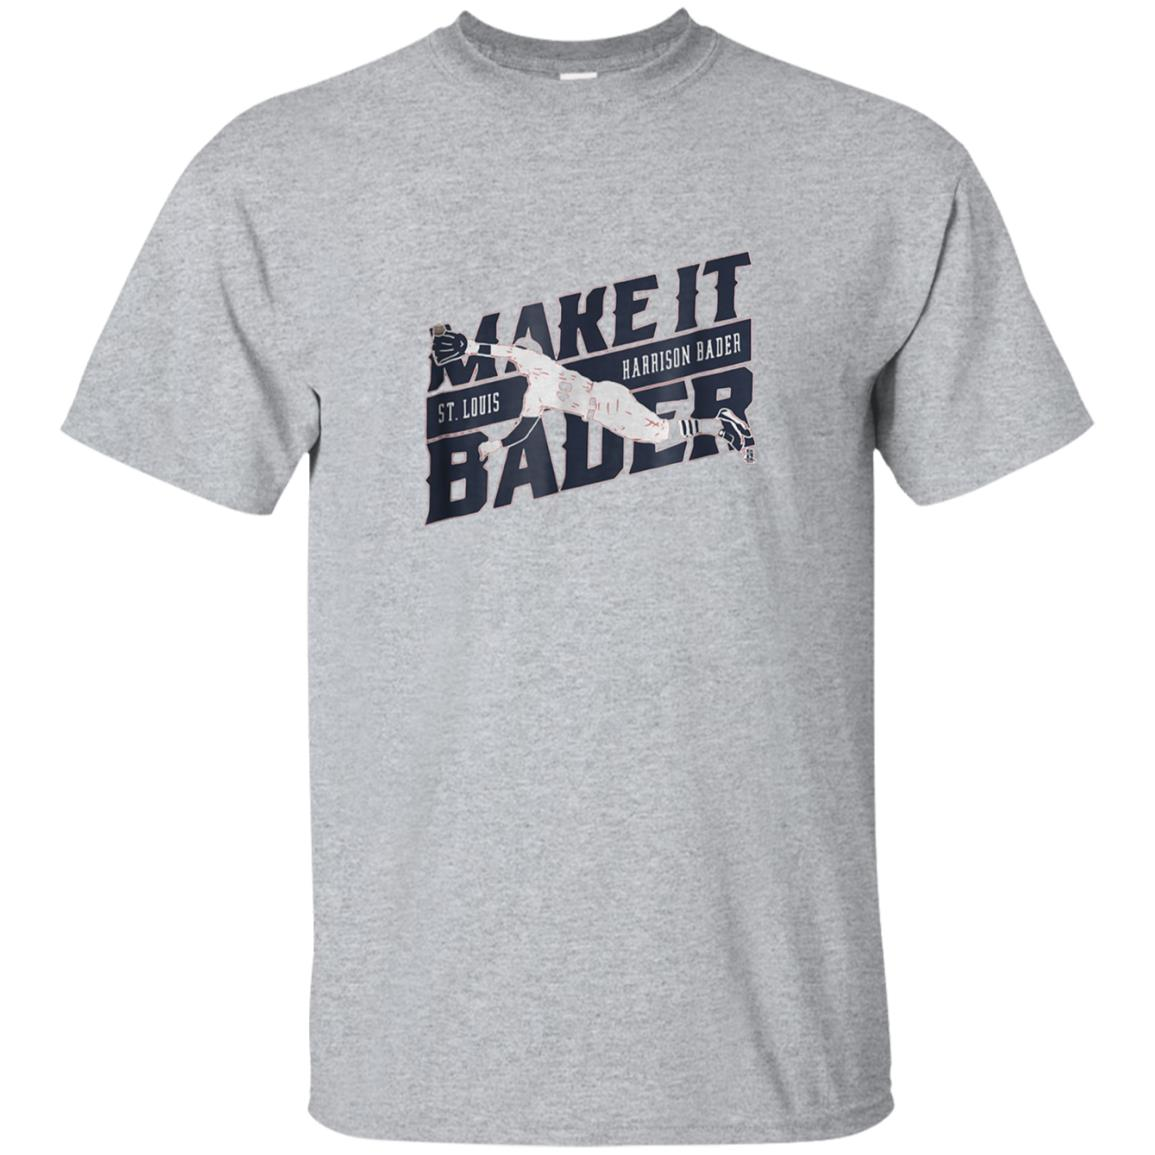 Harrison Make It Bader Shirt 99promocode